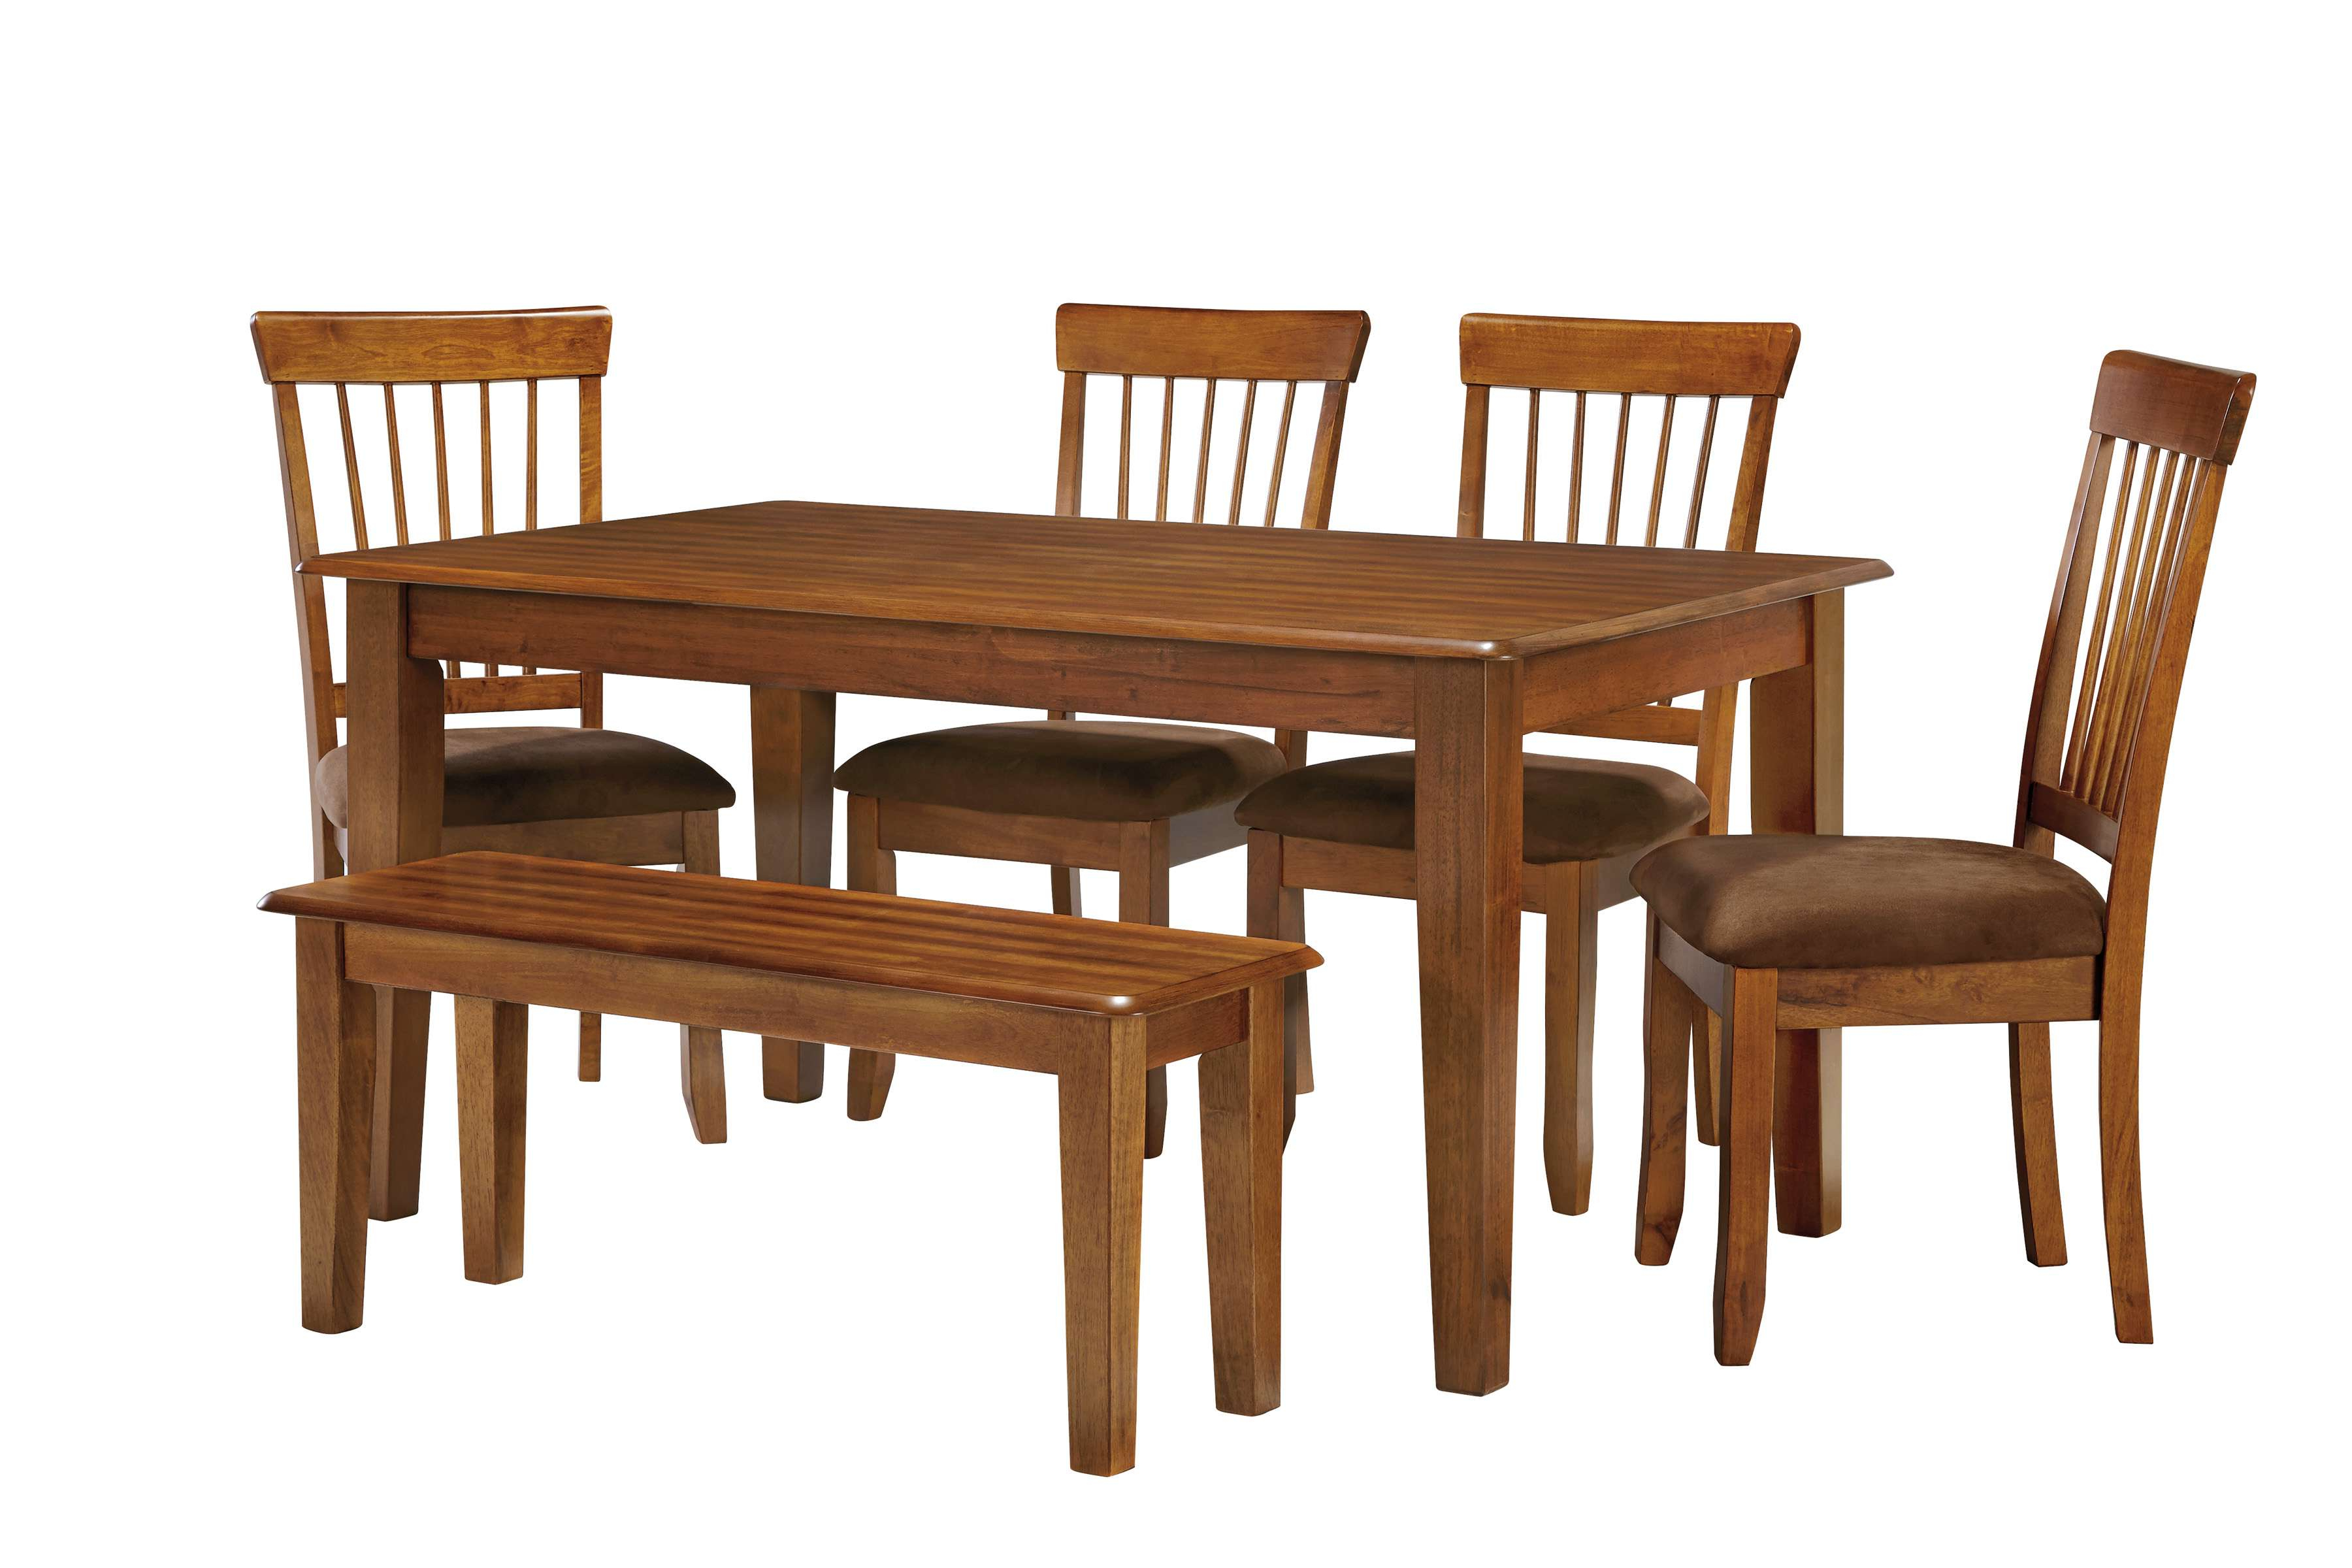 Hood Canal 3 Piece Dining Sets With Preferred Signature Designashley D199 01, D199 01, D199 25, D199  (View 10 of 20)